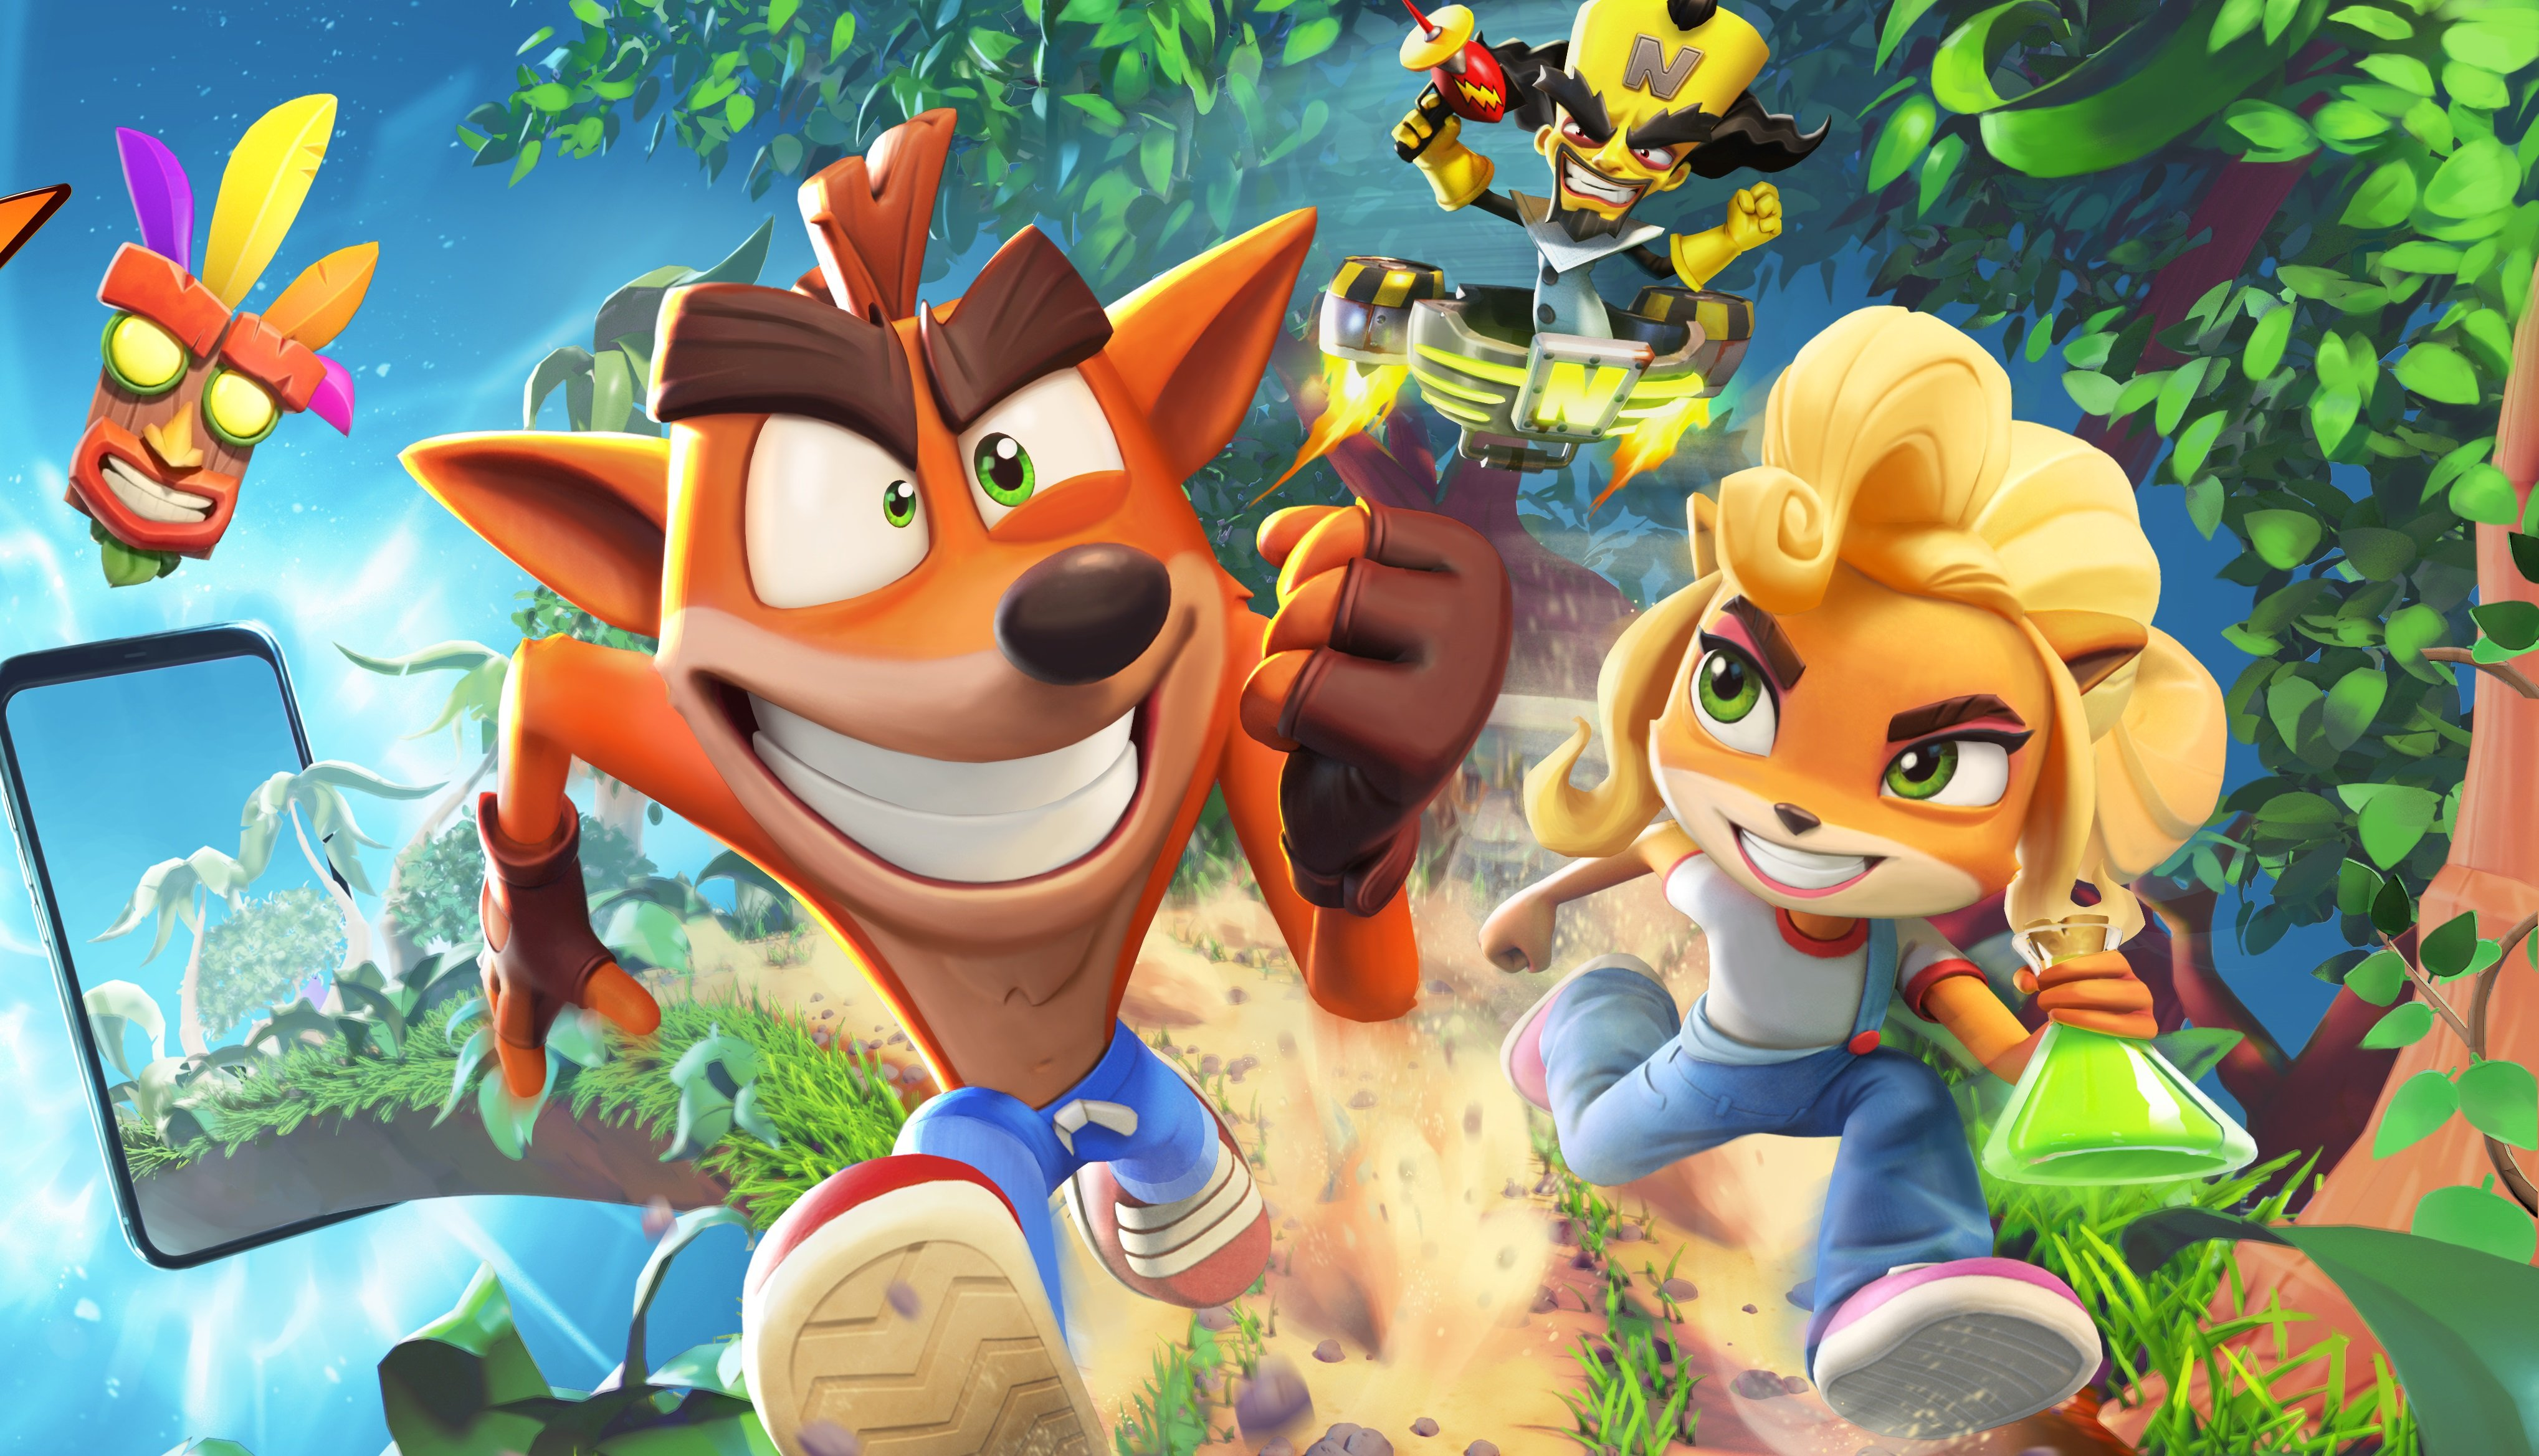 The Crash Bandicoot Mobile Game Is Starting to Run Onto